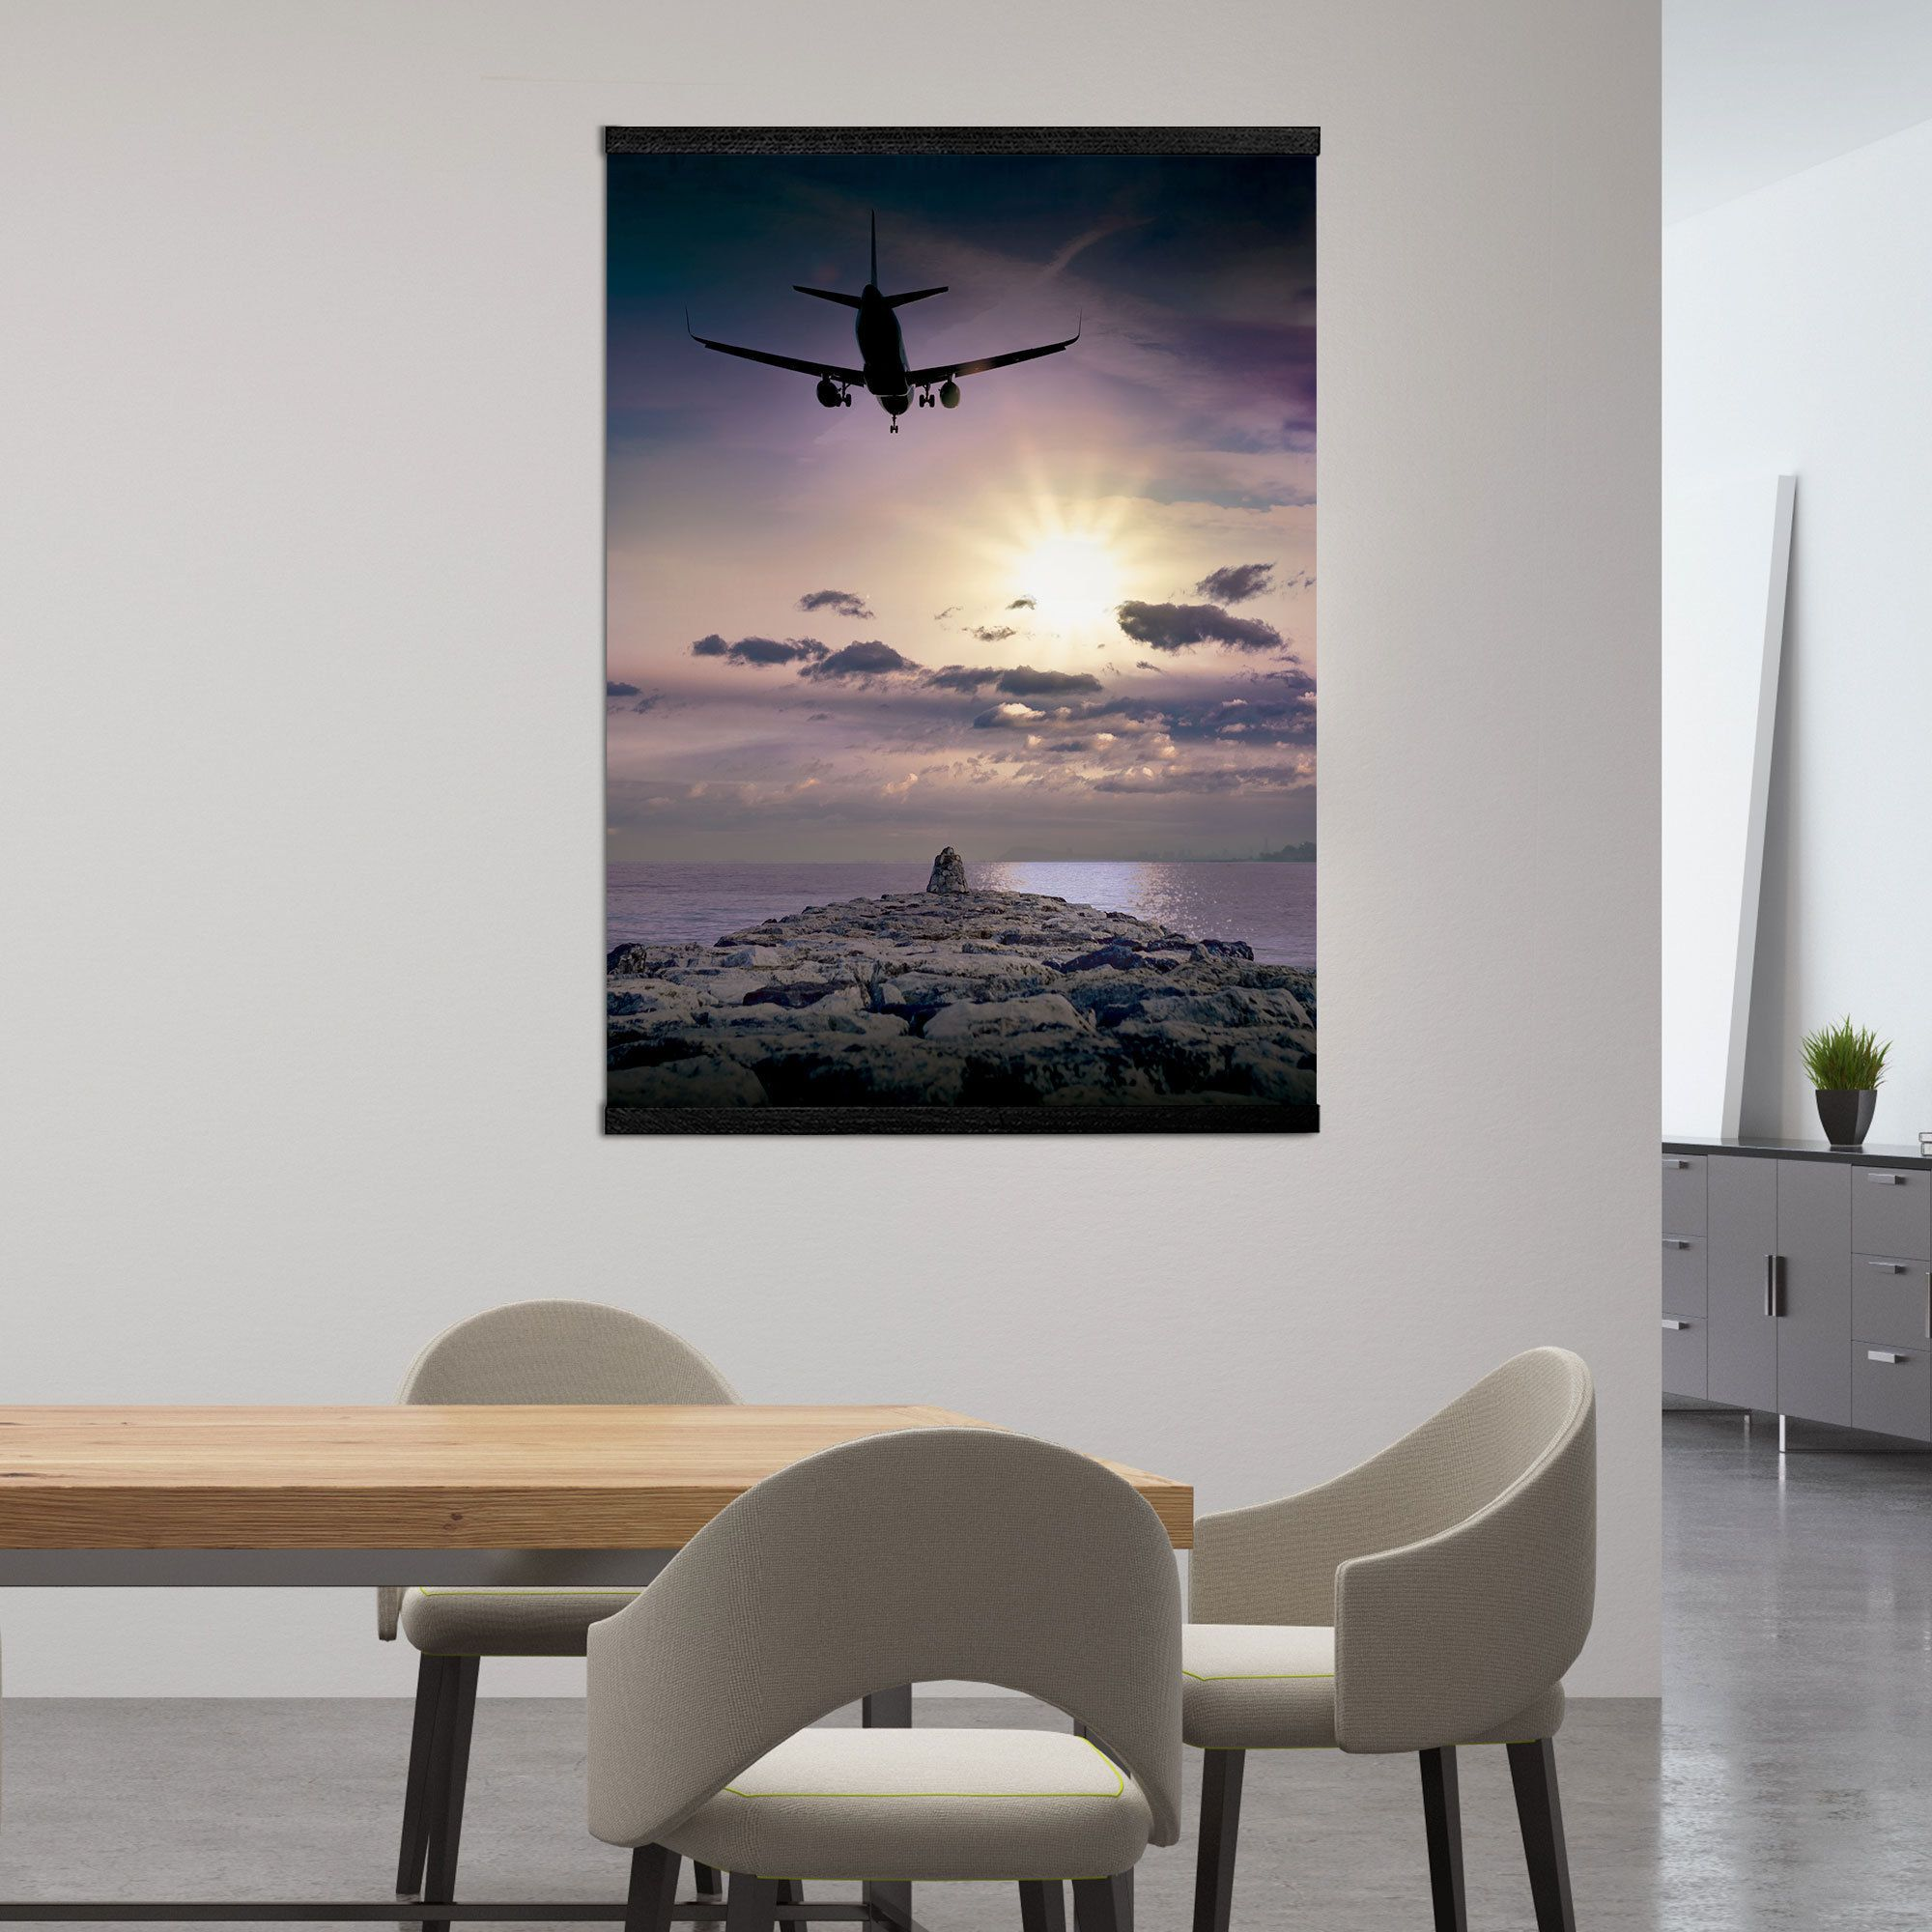 Plane Wall Art With Frame Flight Canvas Landing Plane Wall Etsy Plane Wall Art Travel Wall Art Travel Gallery Wall